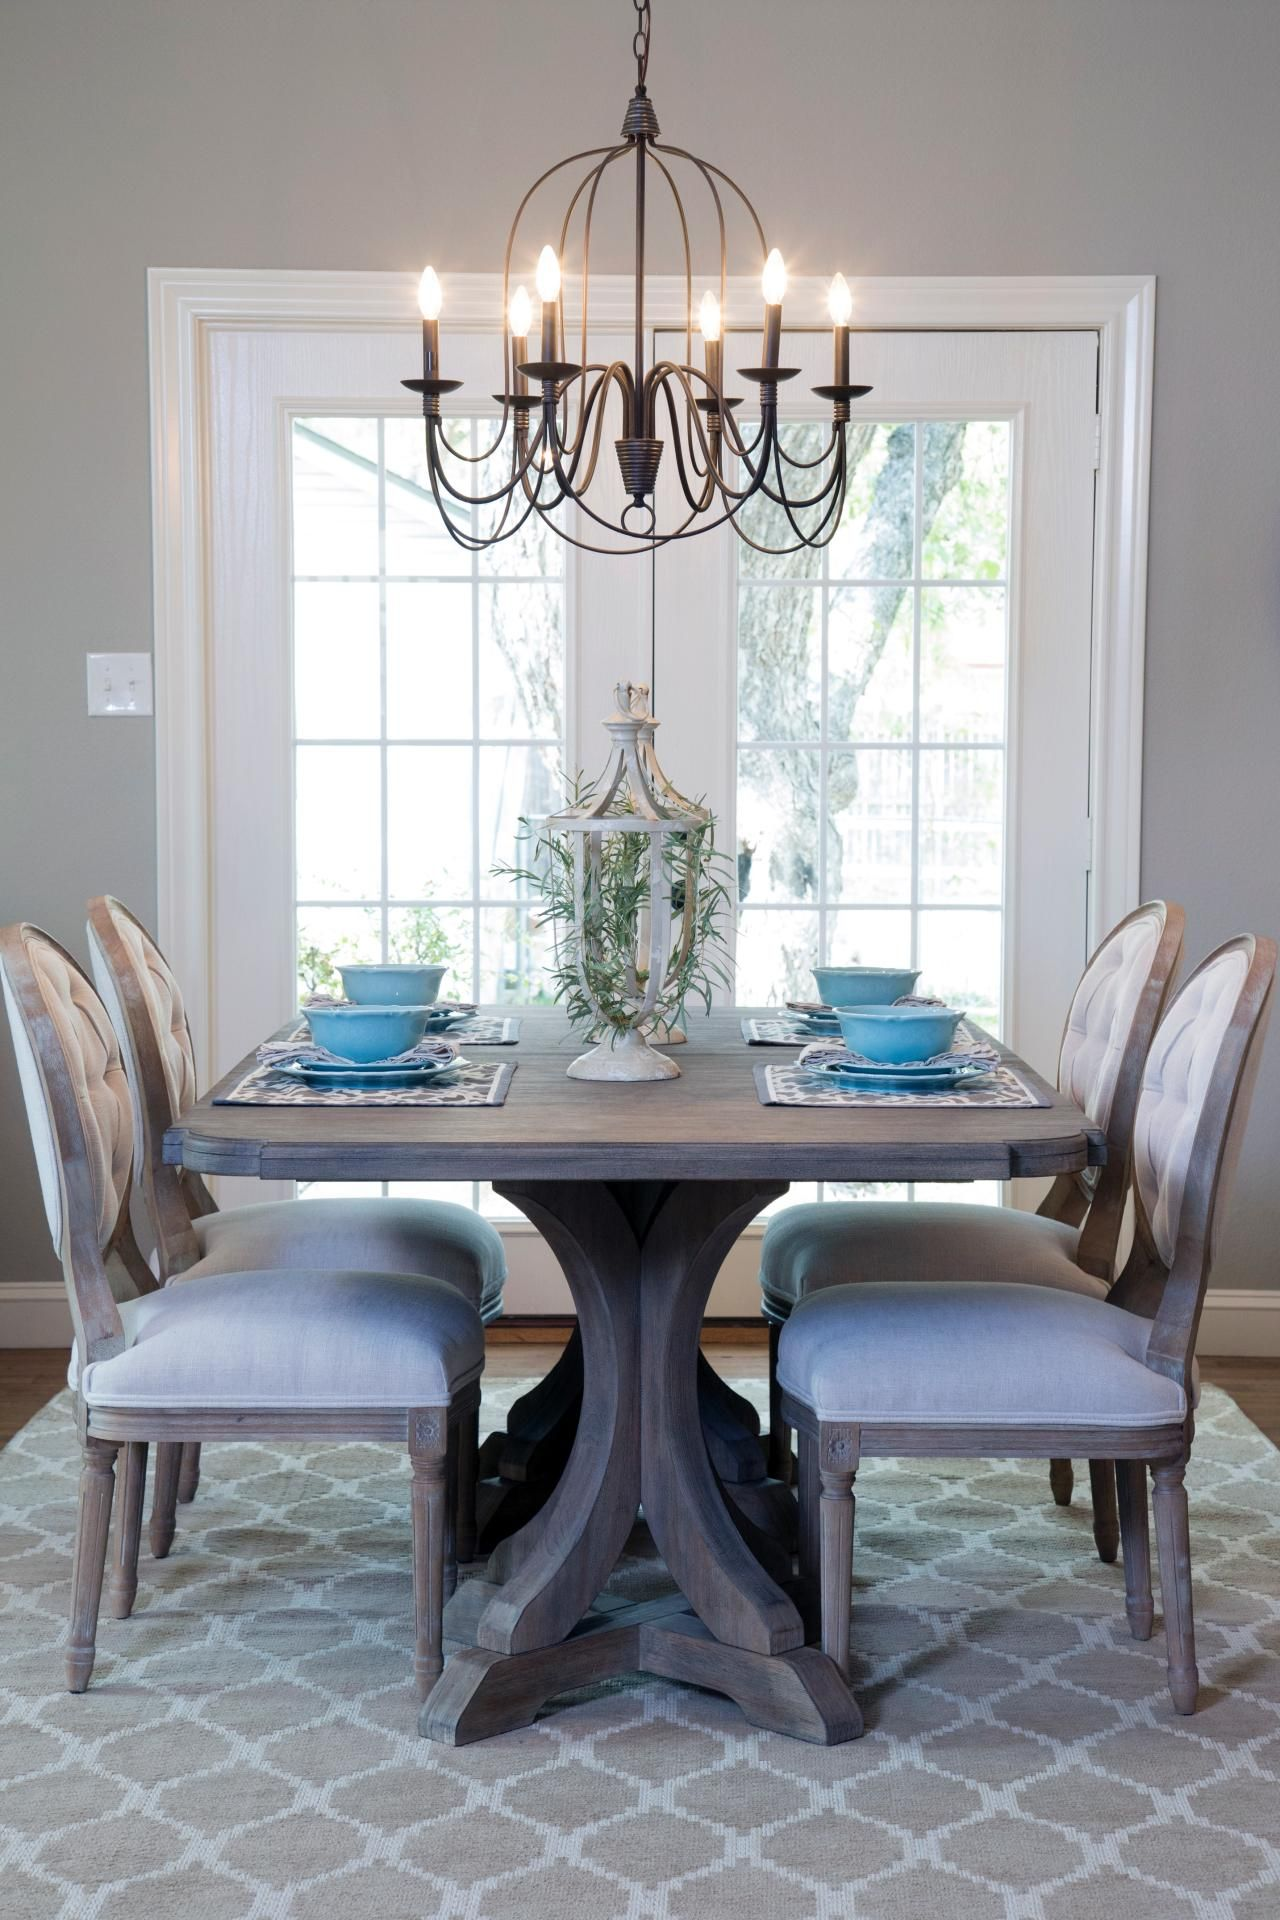 A 1940s vintage fixer upper for first time homebuyers for Fixer upper dining room ideas